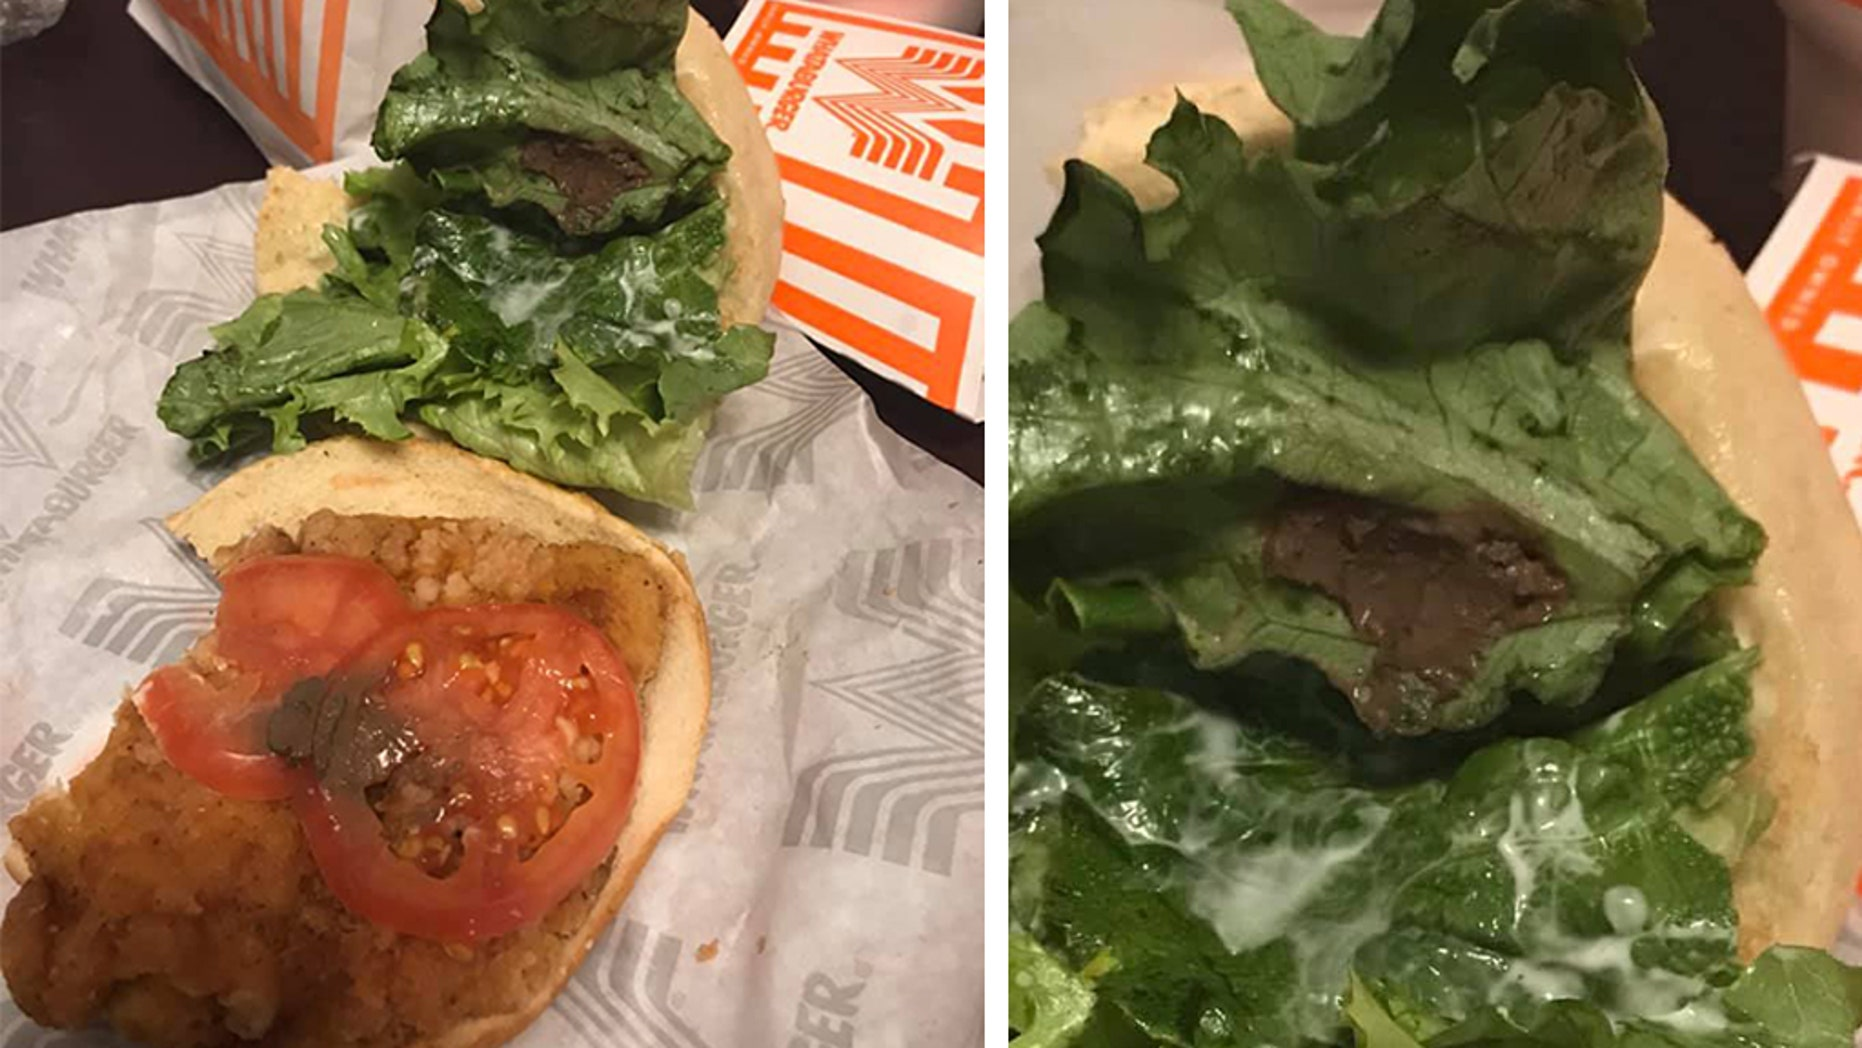 A Texas woman claims she found a clump of mud in her Whataburger sandwich.